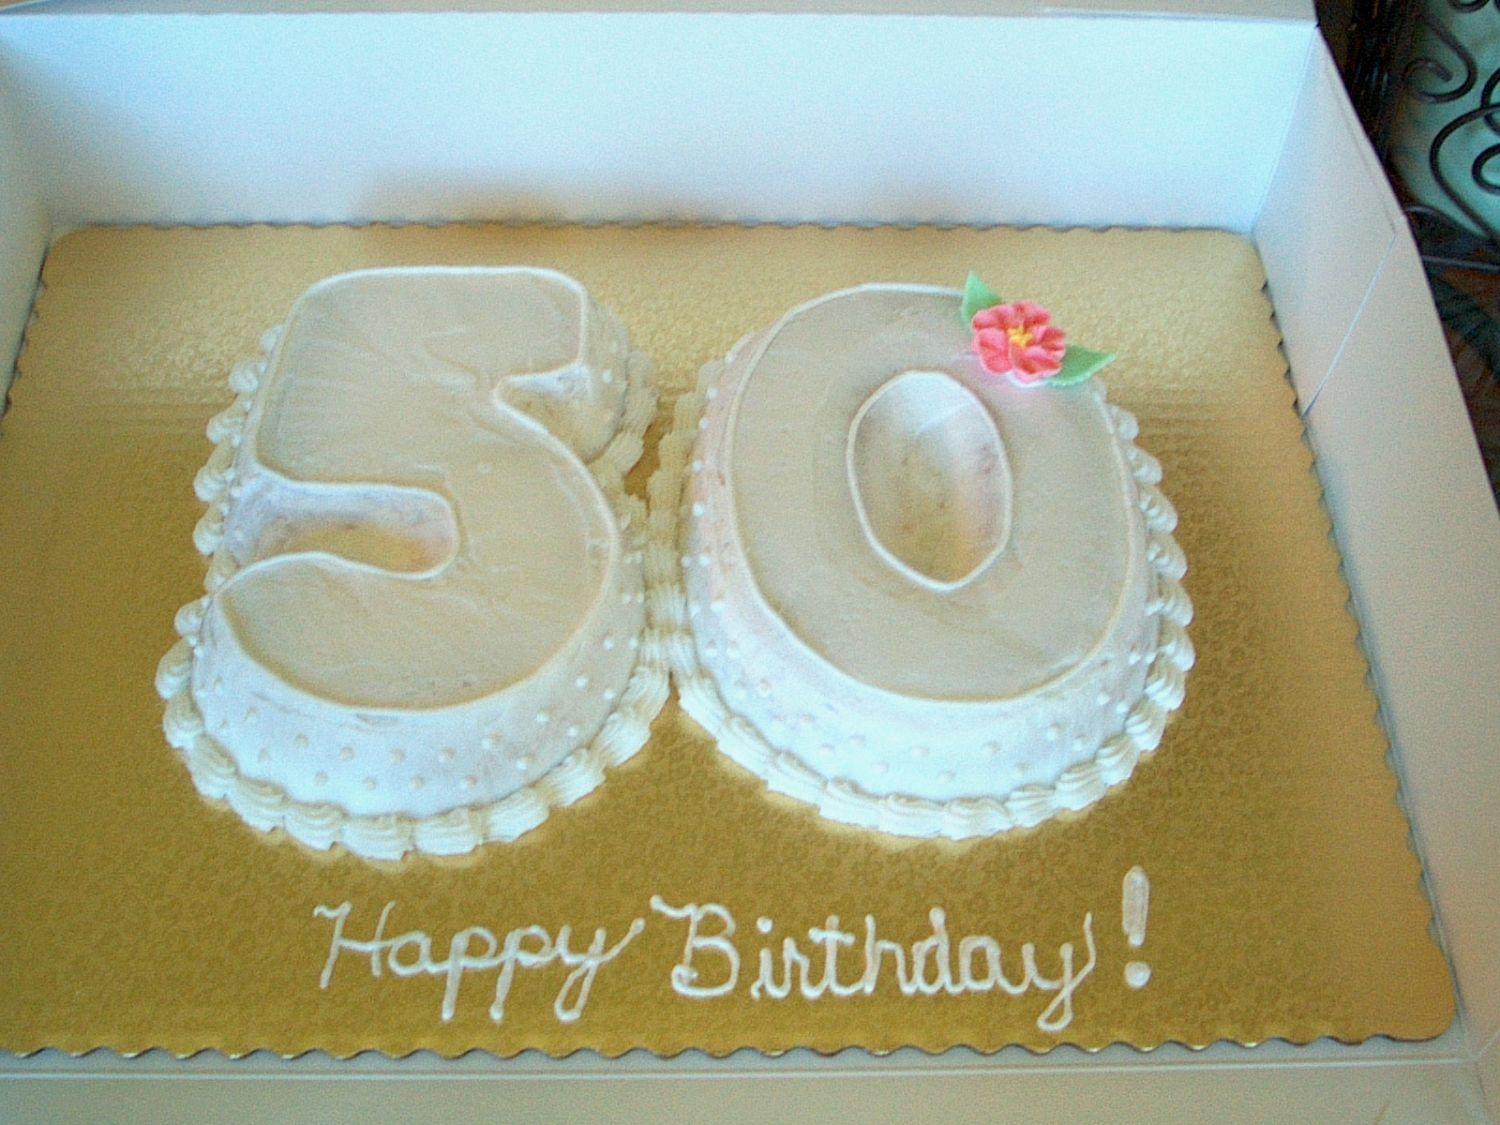 Cake for a 50th birthday.  They wanted simple and elegant and the numbers 5 and 0.